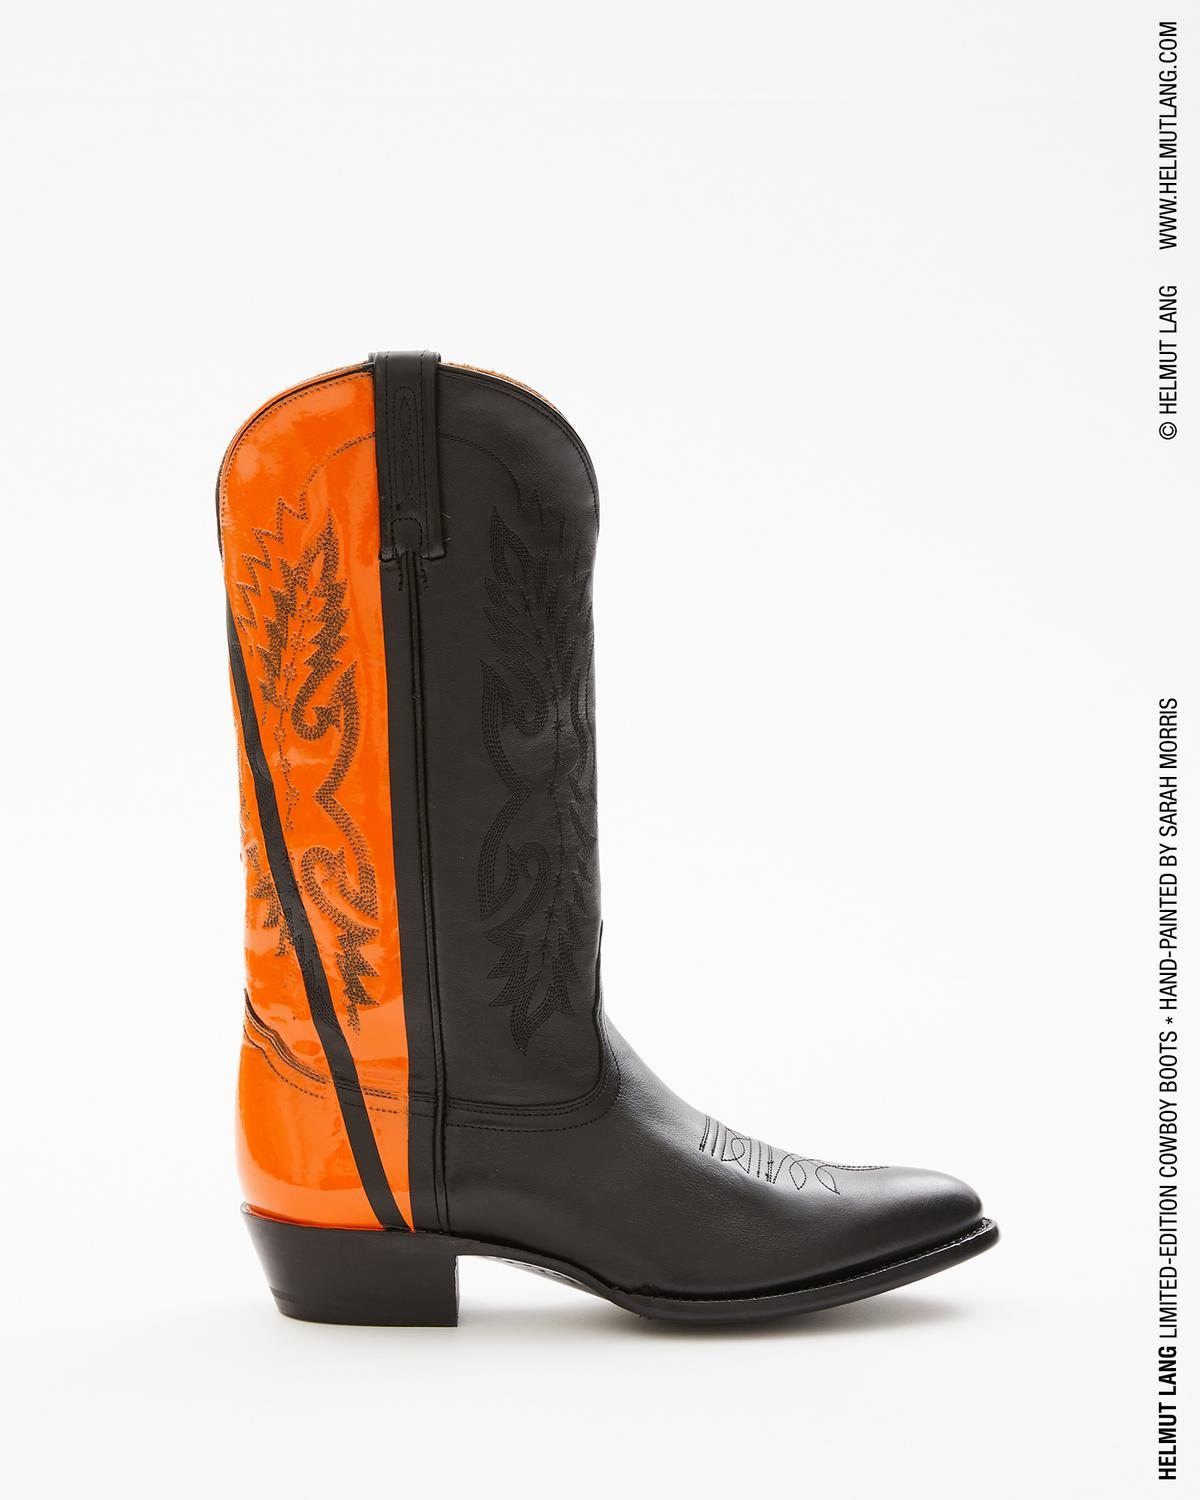 SARAH MORRIS ORANGE HAND-PAINTED COWBOY BOOT